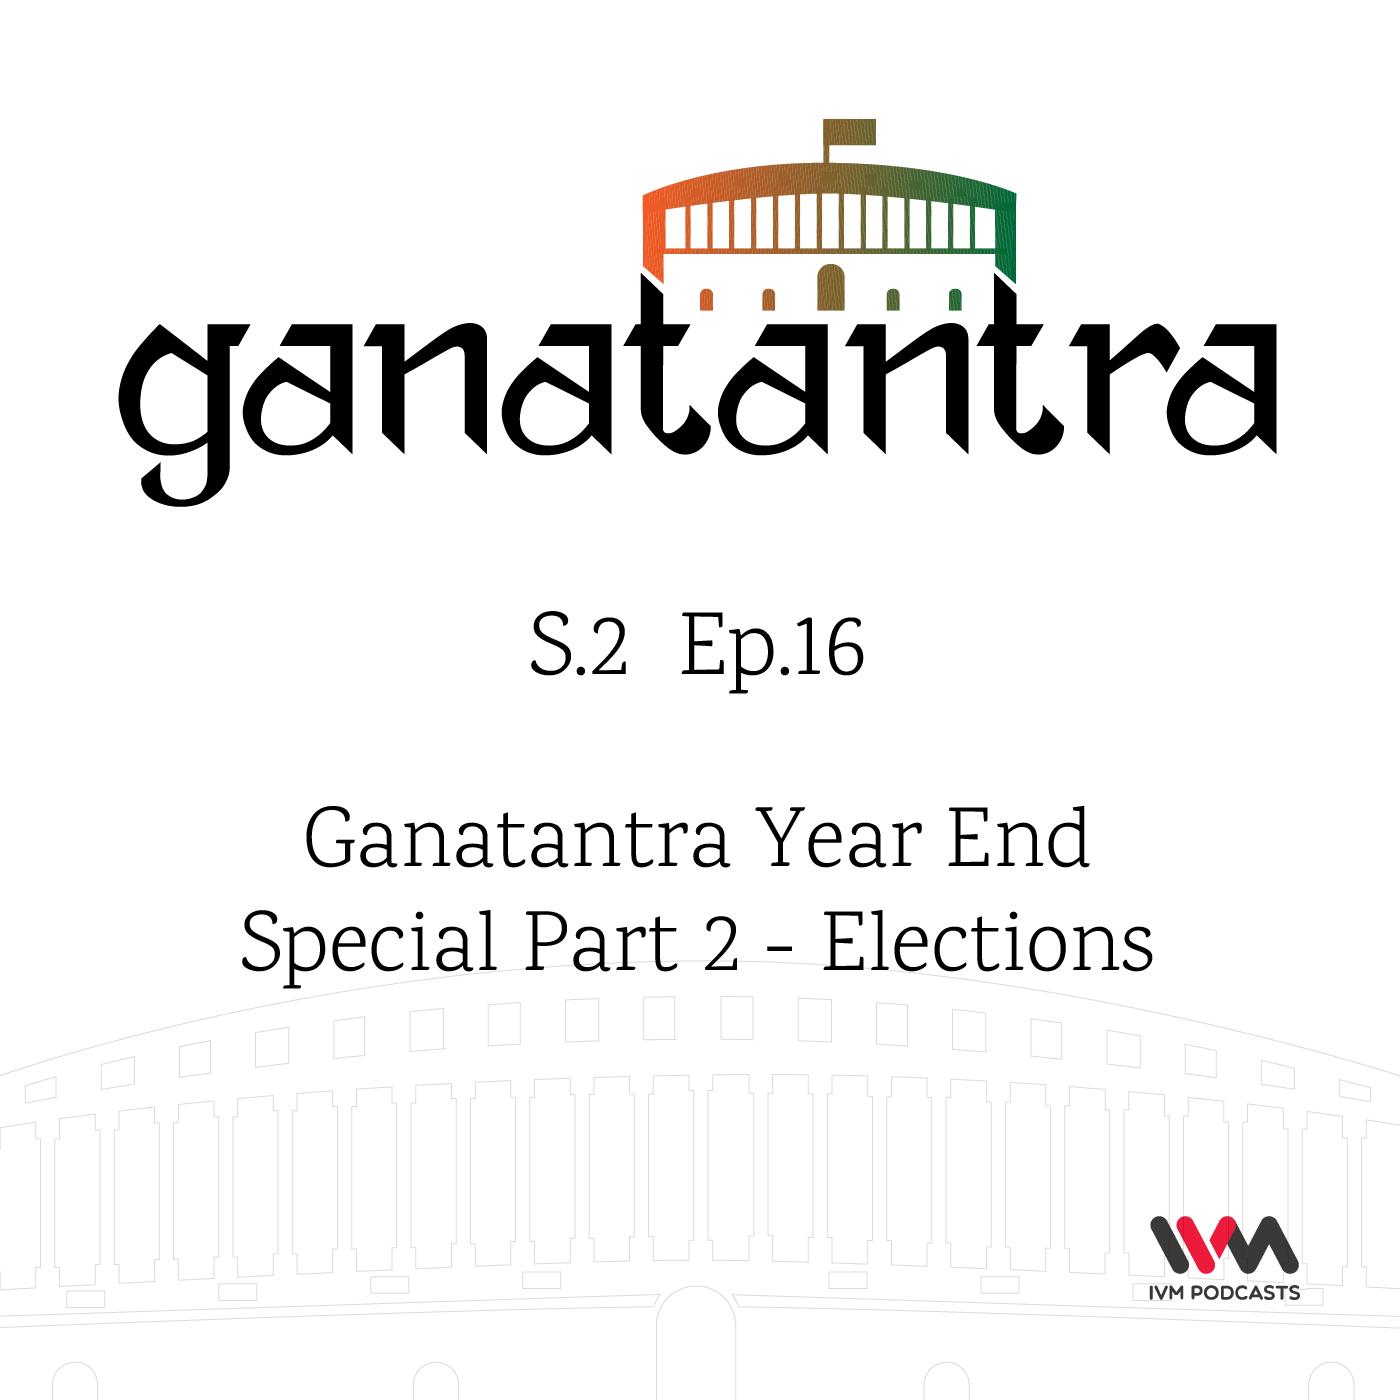 S02 E16: Ganatantra Year End Special Part 2 - Elections